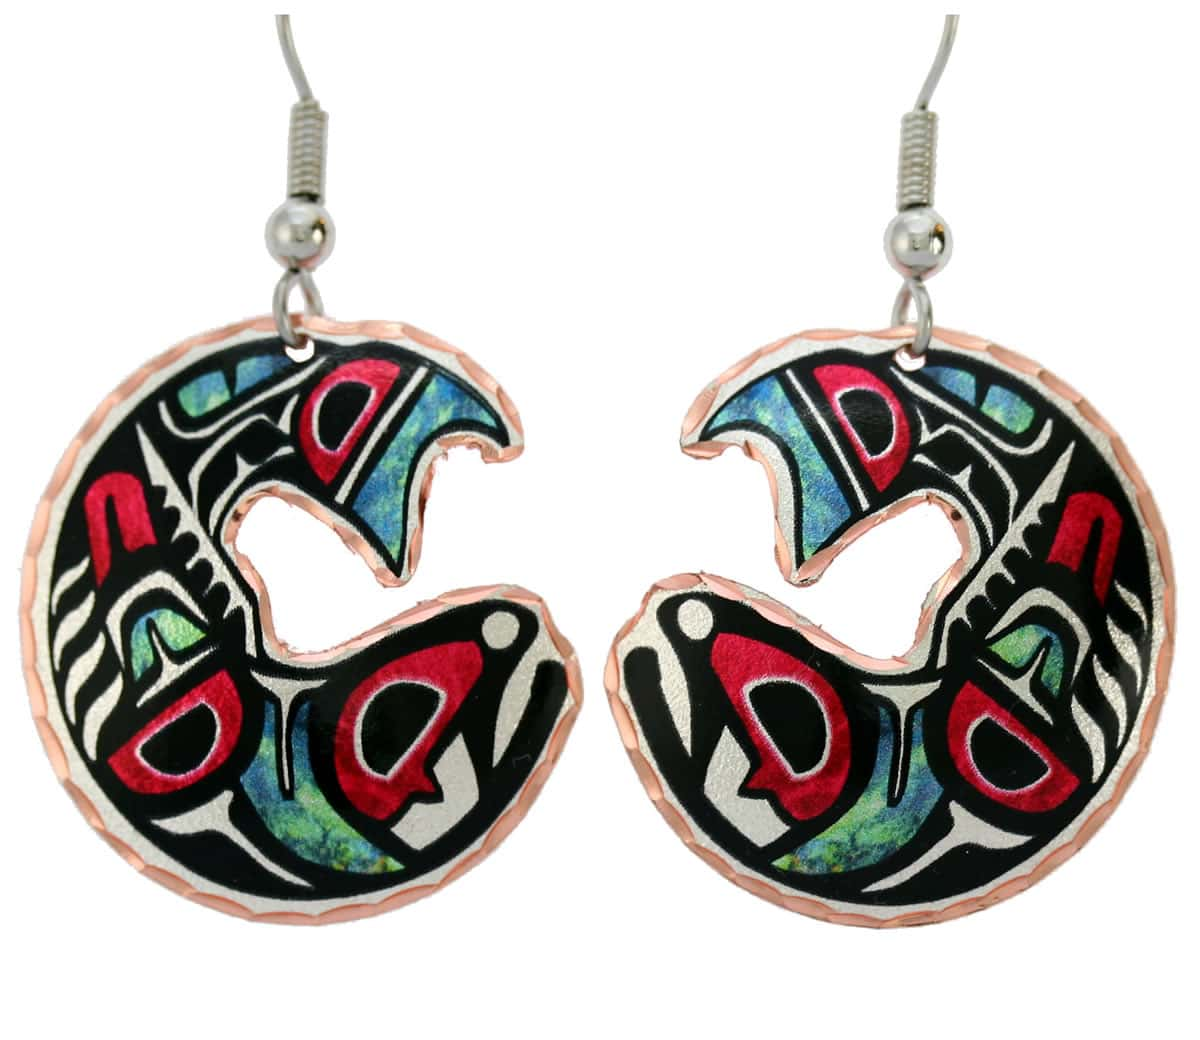 Buy Northwest Native salmon earrings sure to make you stand out in the crowd